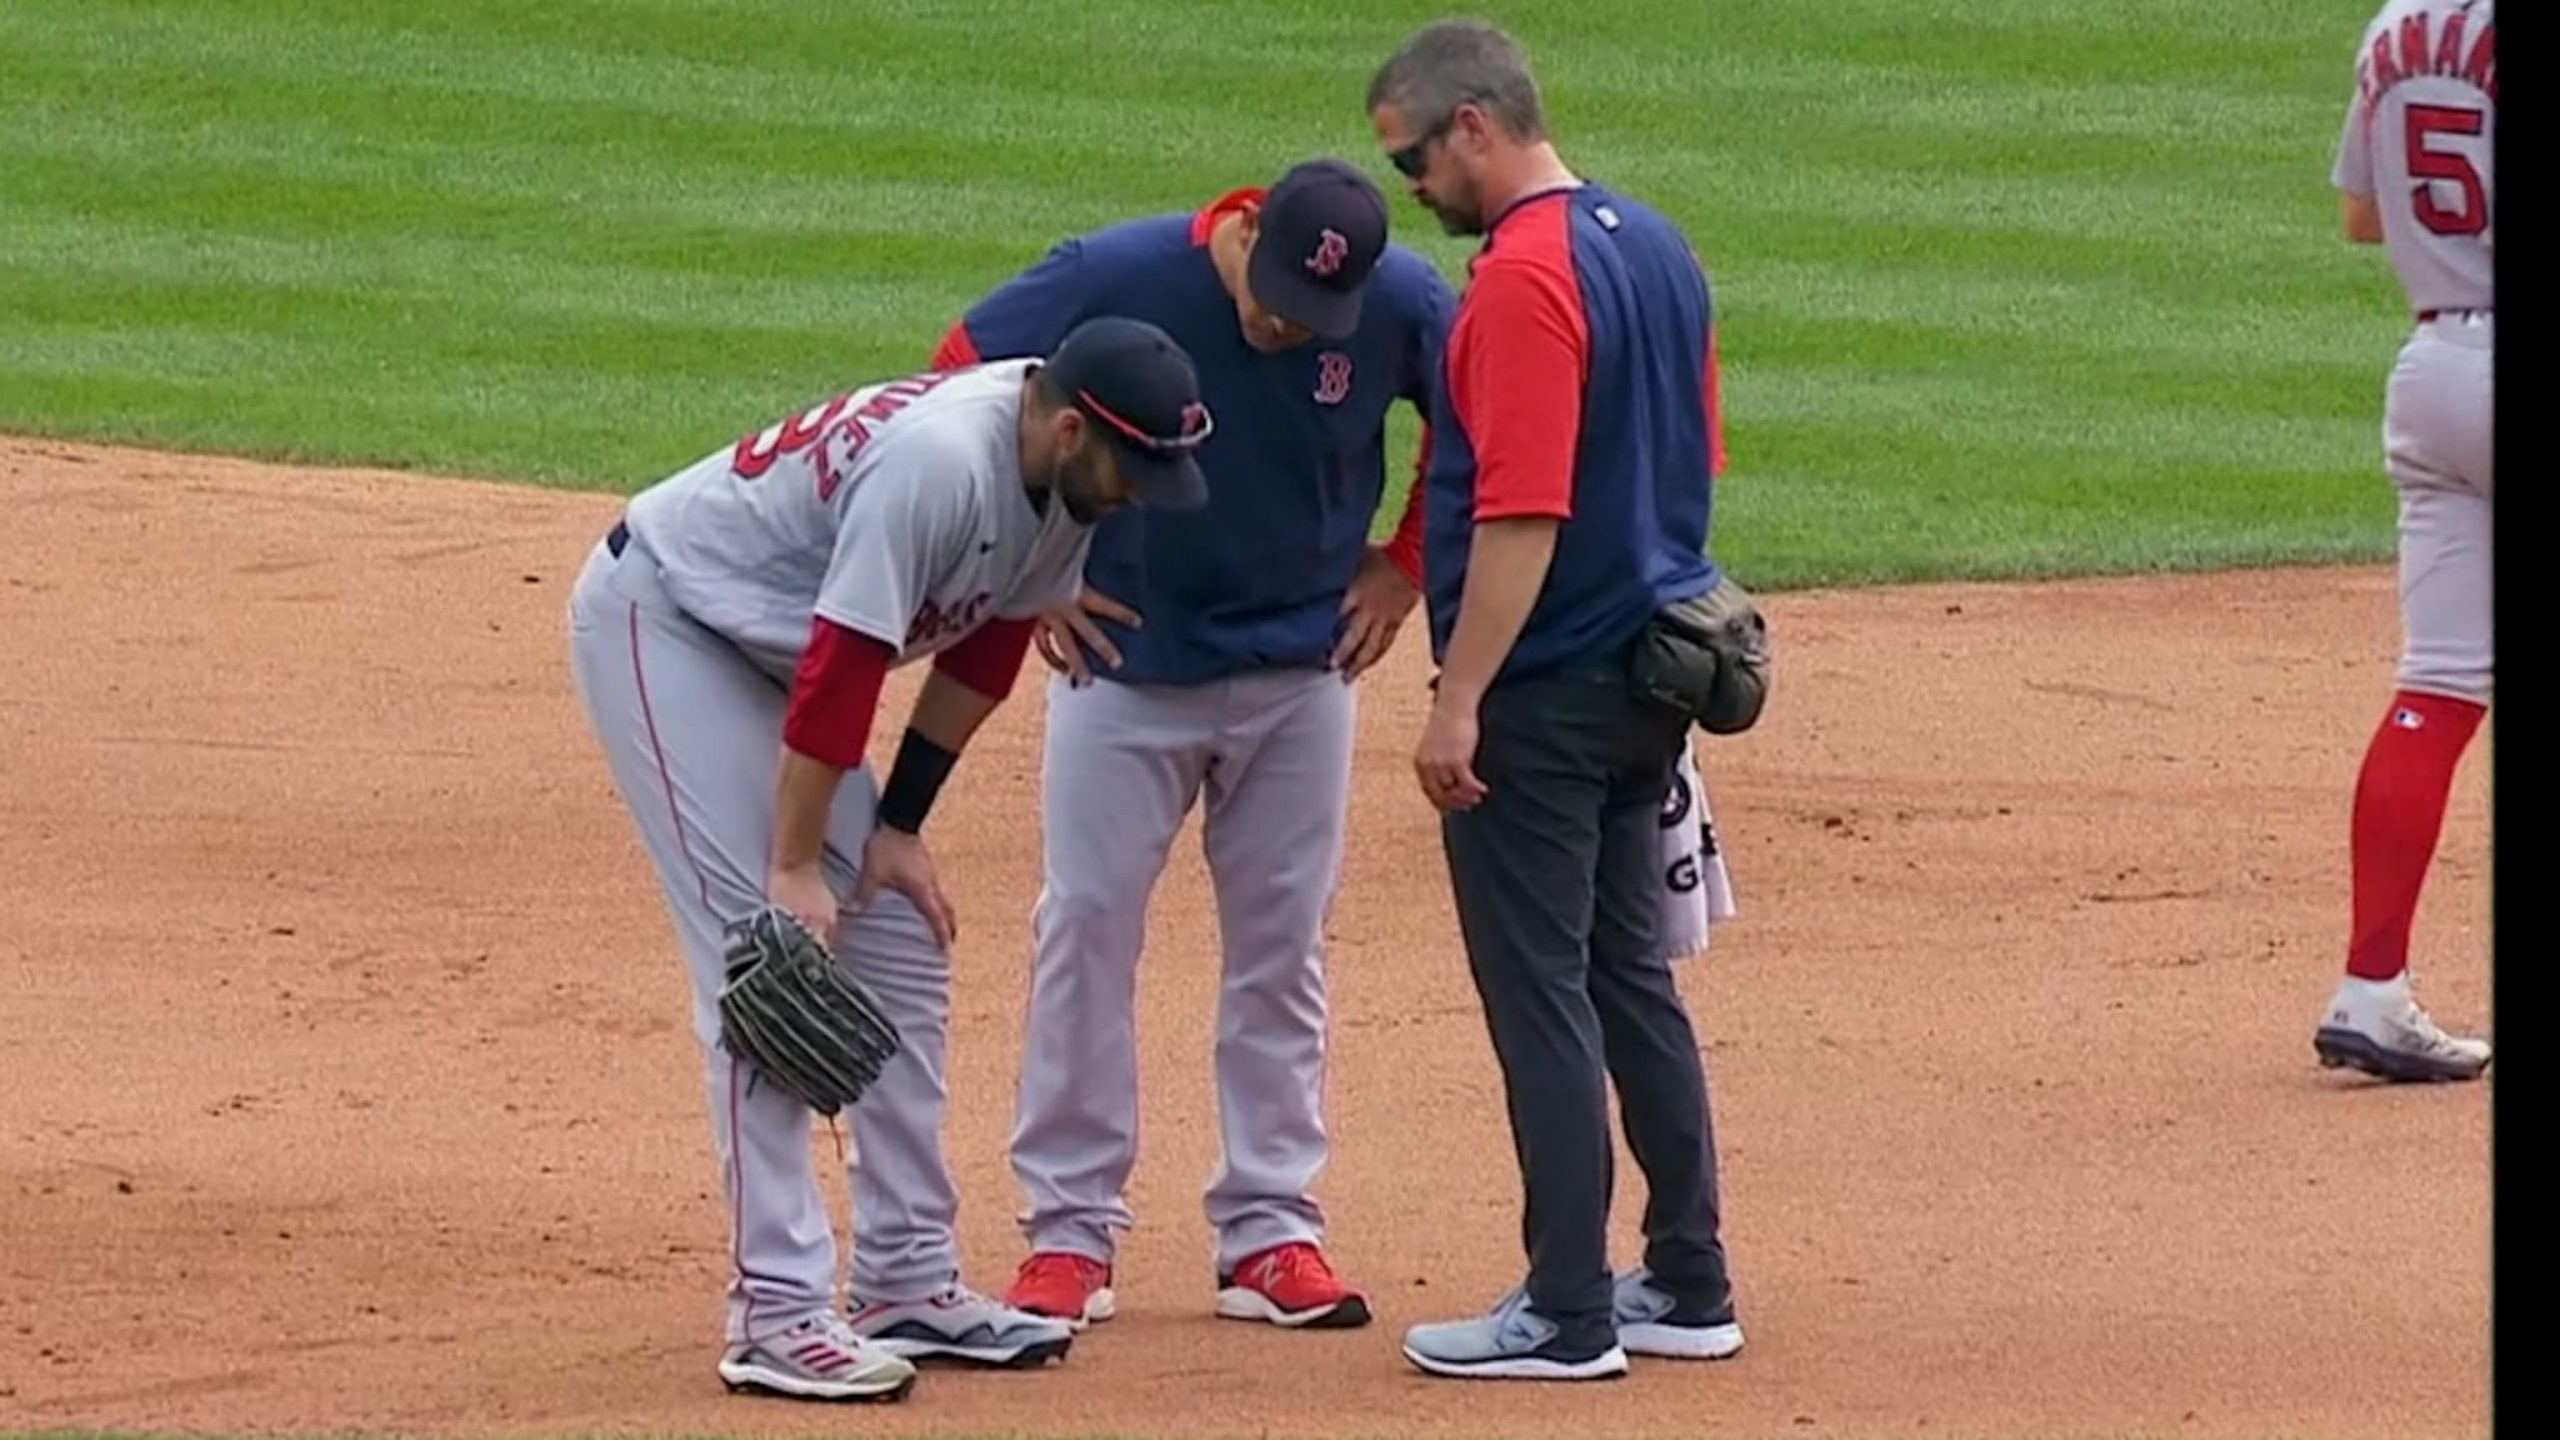 Why Is JD Martinez Not Playing Tonight?